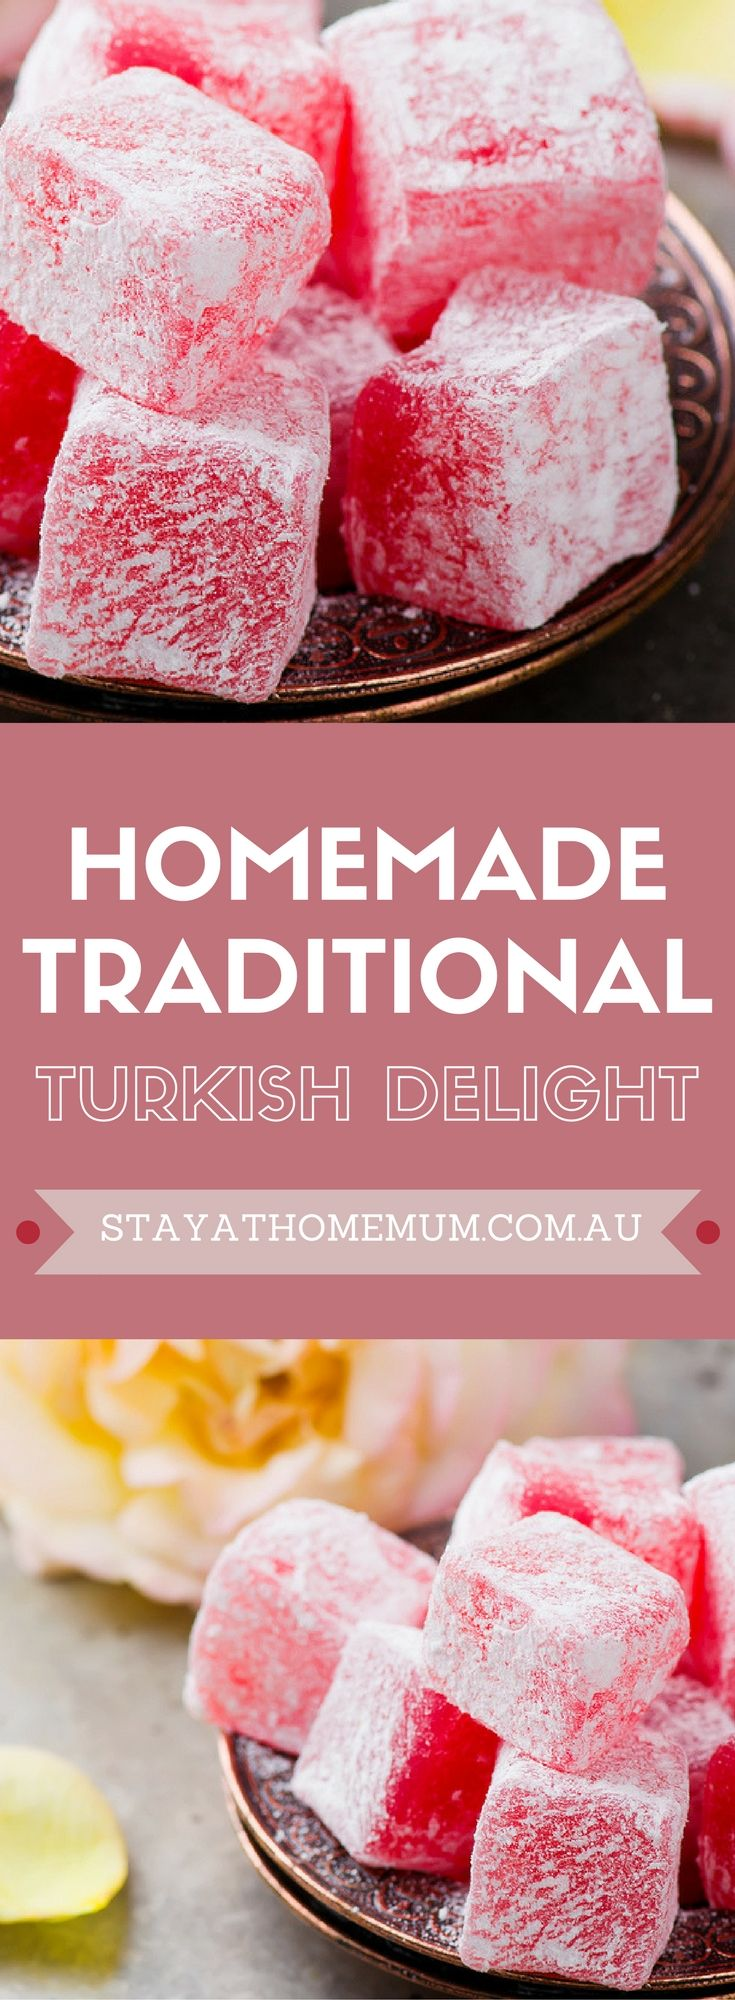 I love Homemade Turkish Delight - especially chopped finely and folded through vanilla ice cream...... Here's how to make a pretty mean version at home.